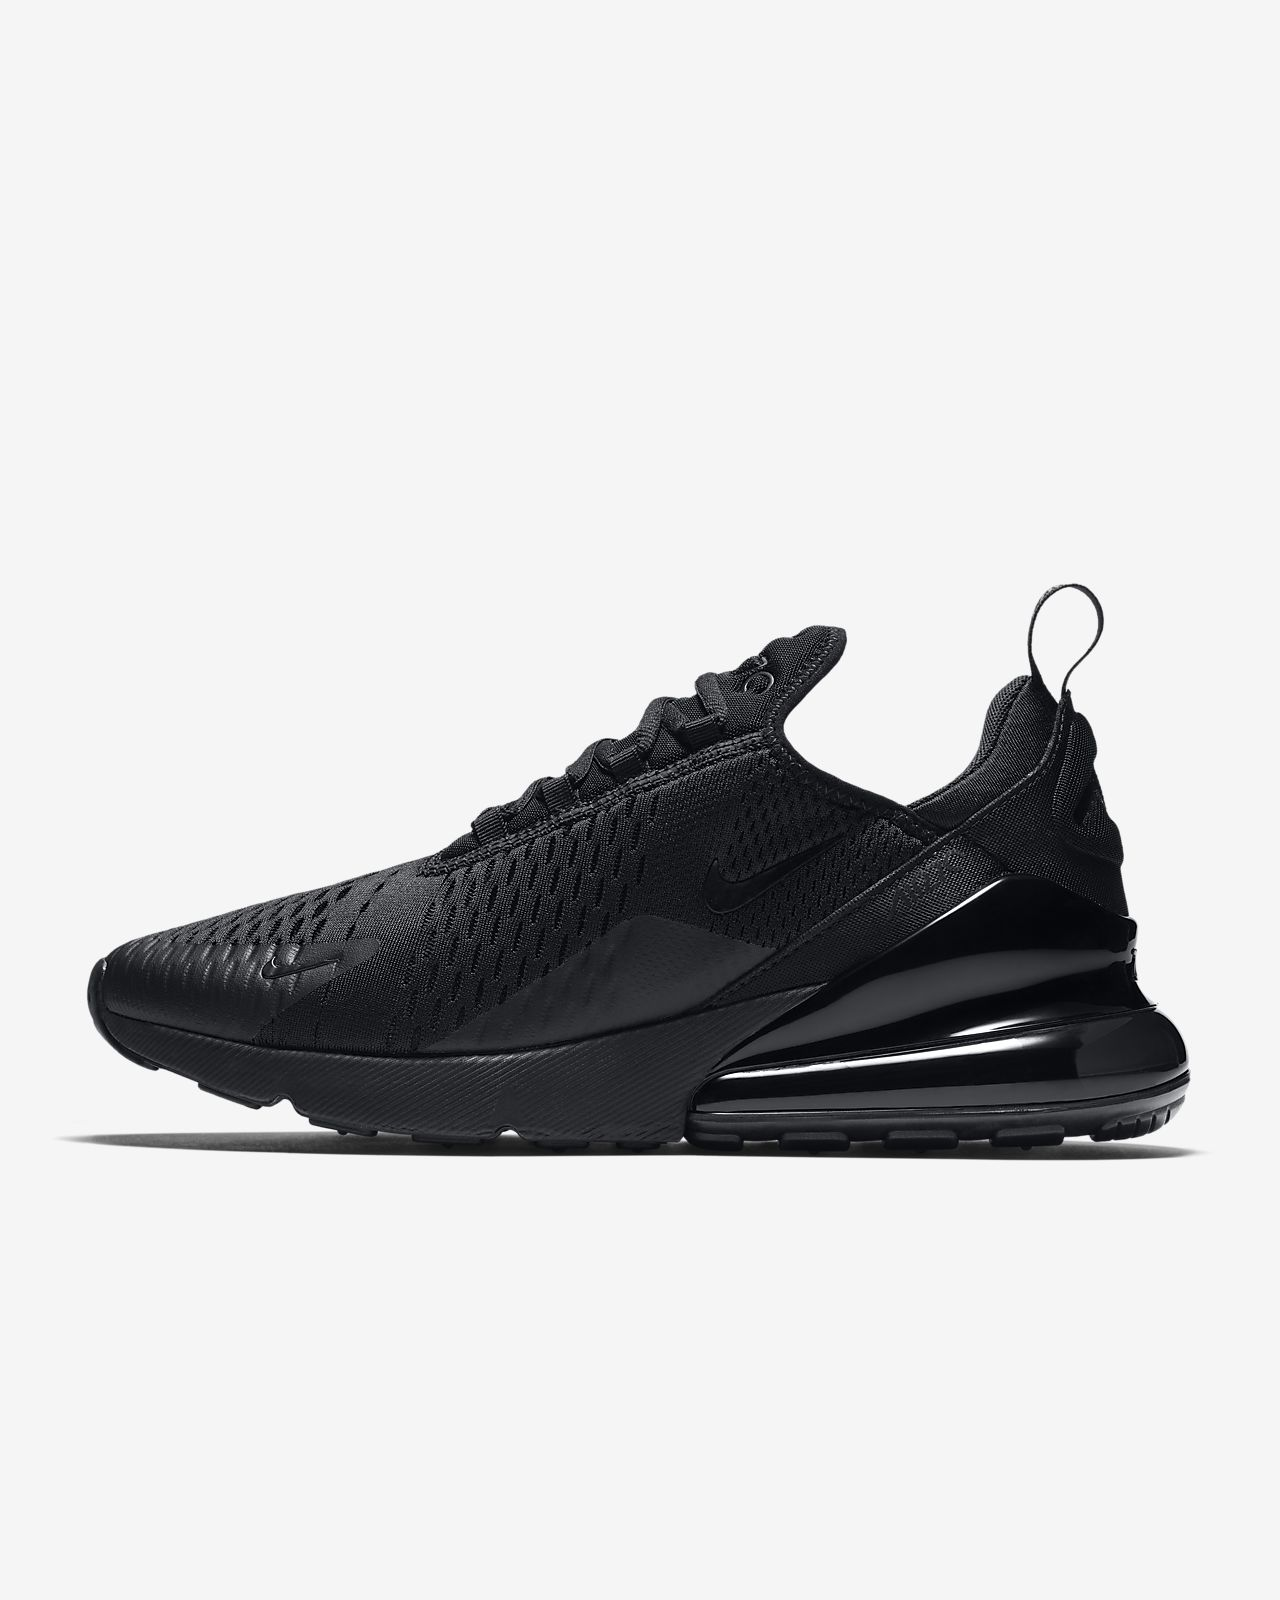 meet 78466 a07e8 Men s Shoe. Nike Air Max 270